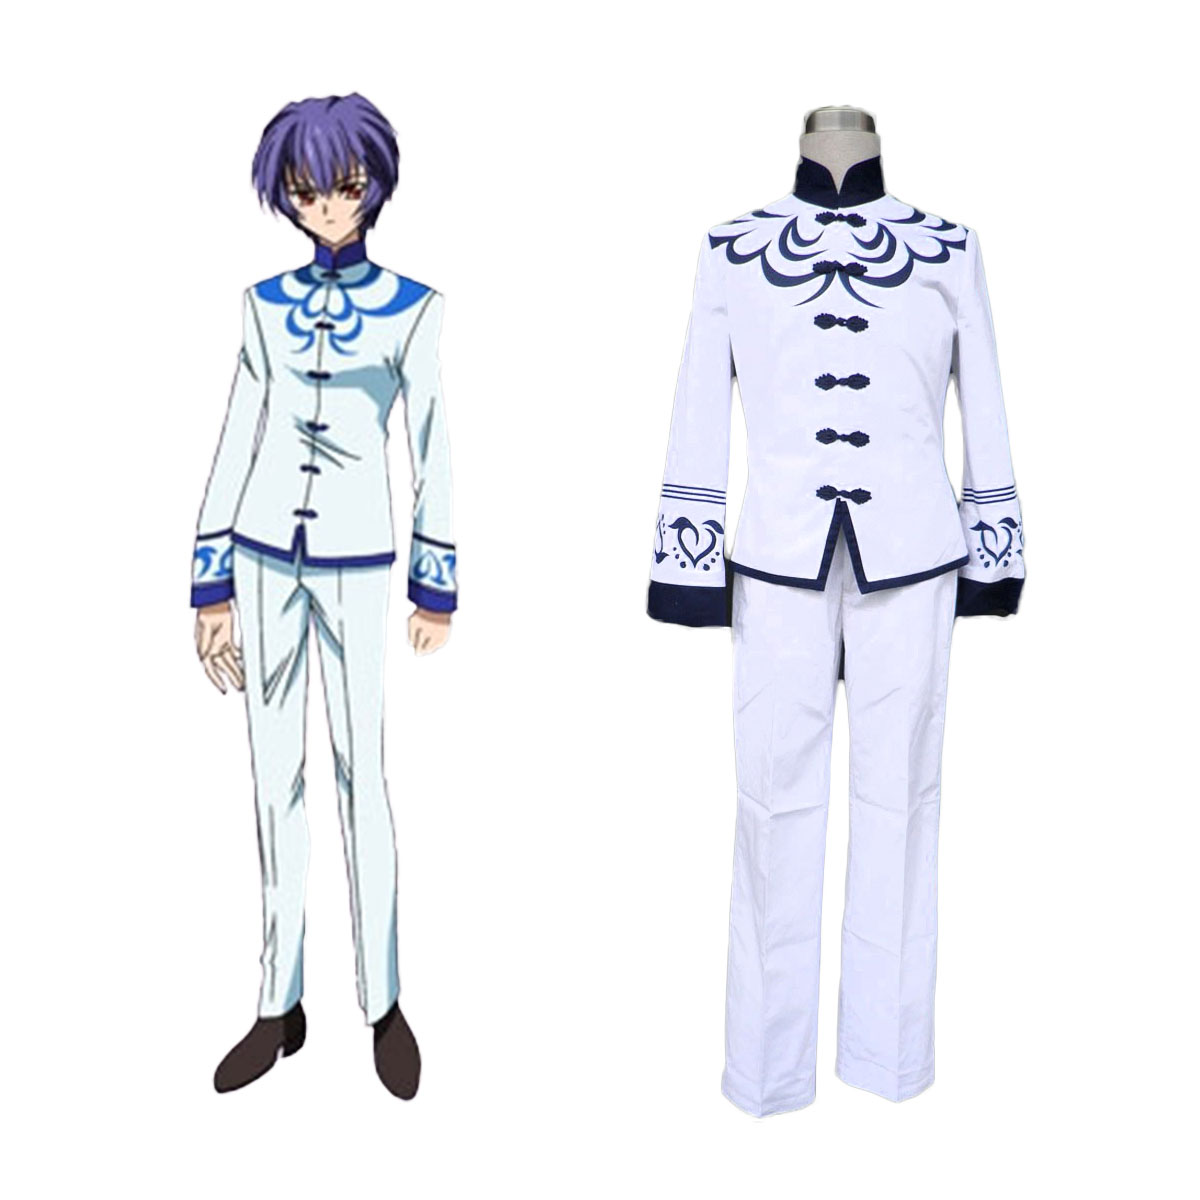 Touka Gettan Male School Uniform Cosplay Costumes AU